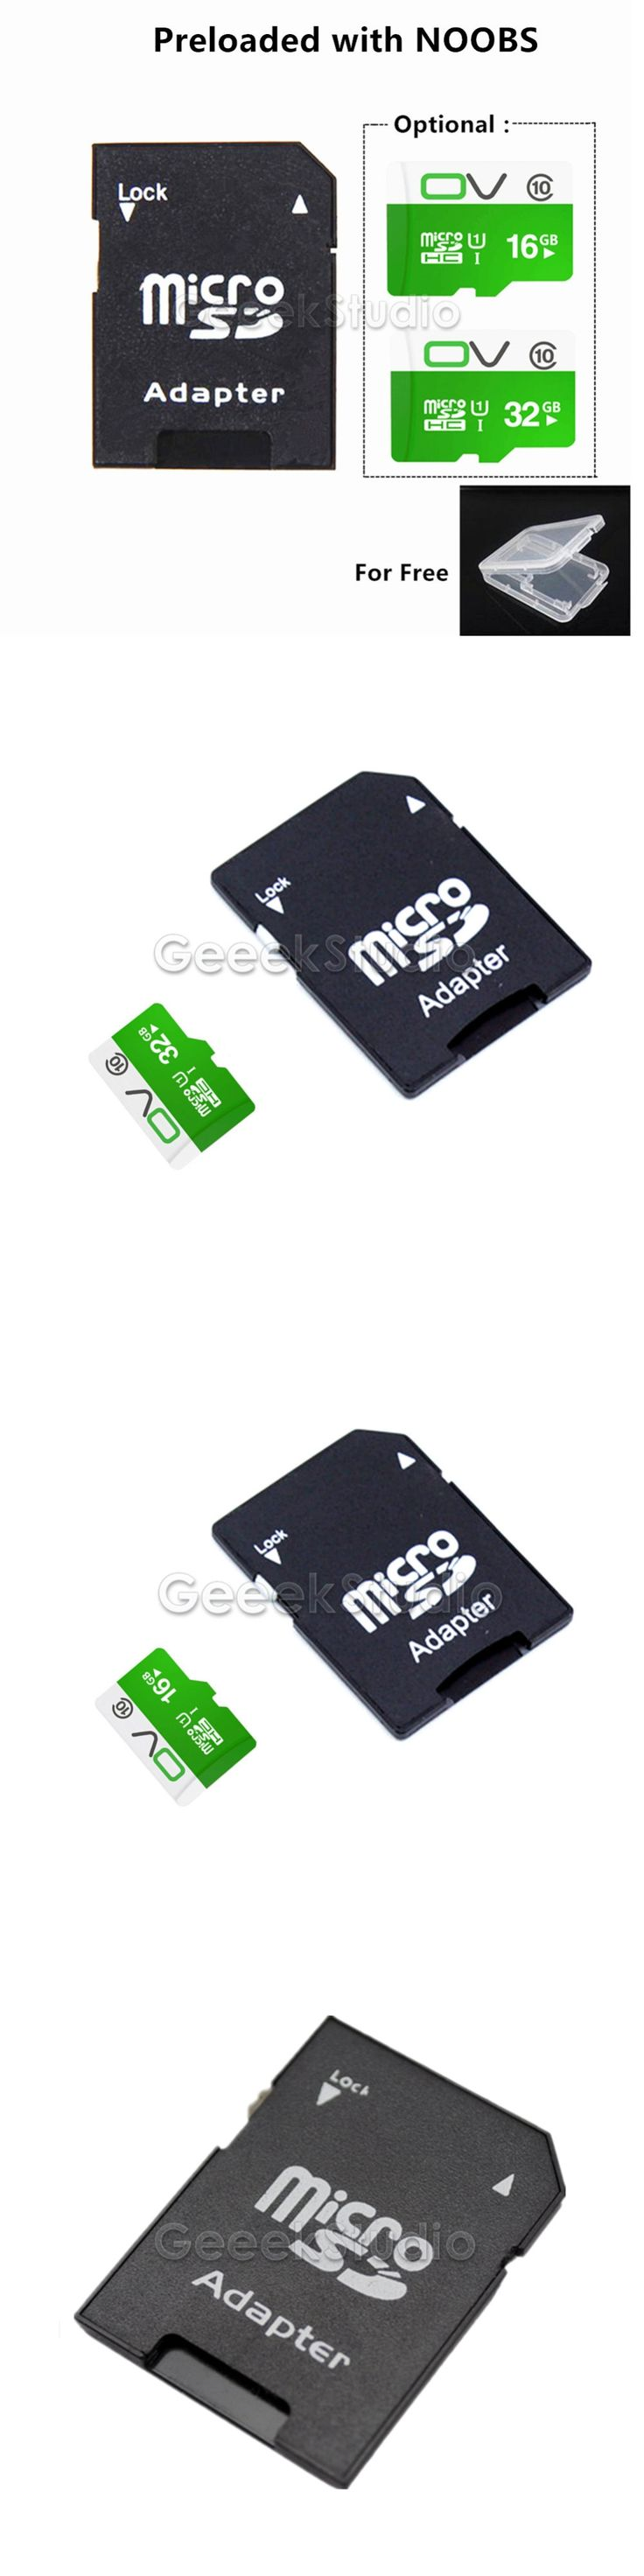 Preloaded NOOBS Optional 16GB / 32GB Micro Class 10 Memory SD Card for Raspberry Pi